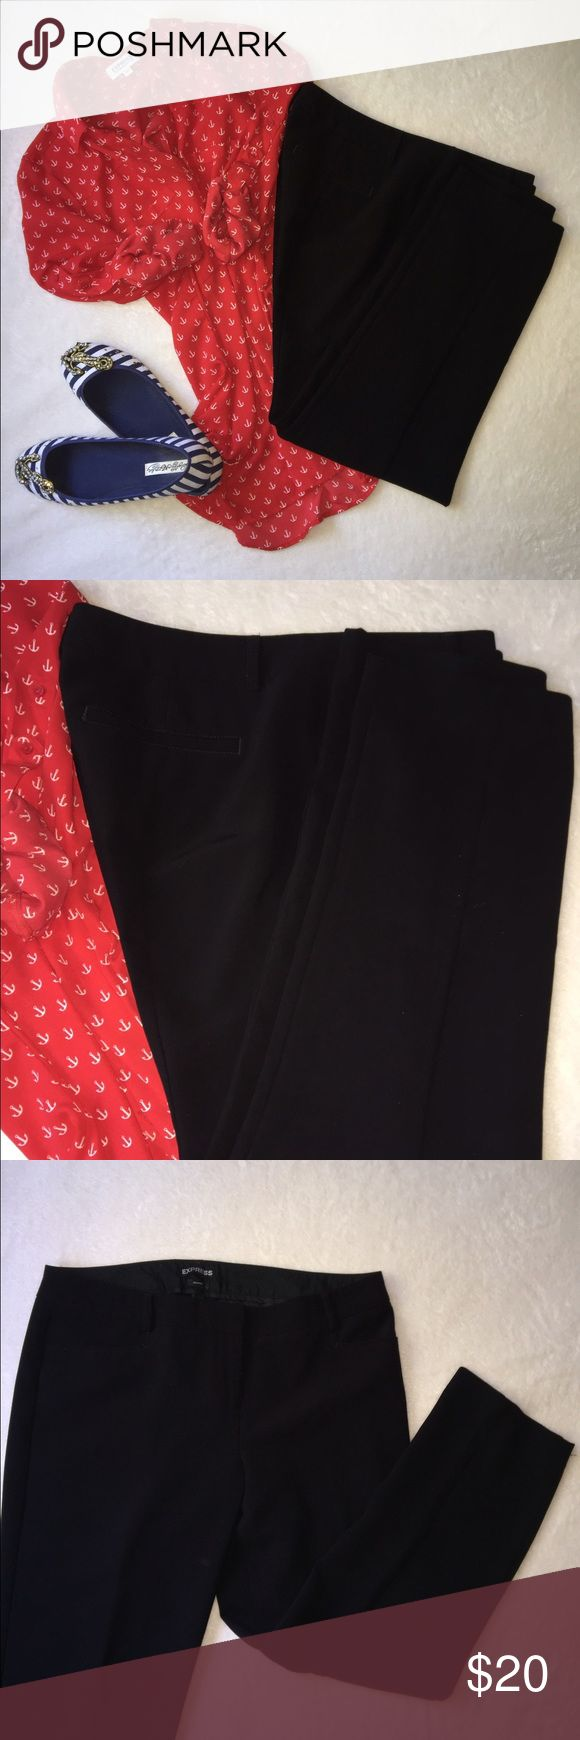 EXPRESS Columnist Professional Pants, Cropped EXPRESS Columnist Professional Pants, Cropped.  Slinky loose material (93% poly 7% spandex).  These feel great on, and wear well all day. Express Pants Ankle & Cropped